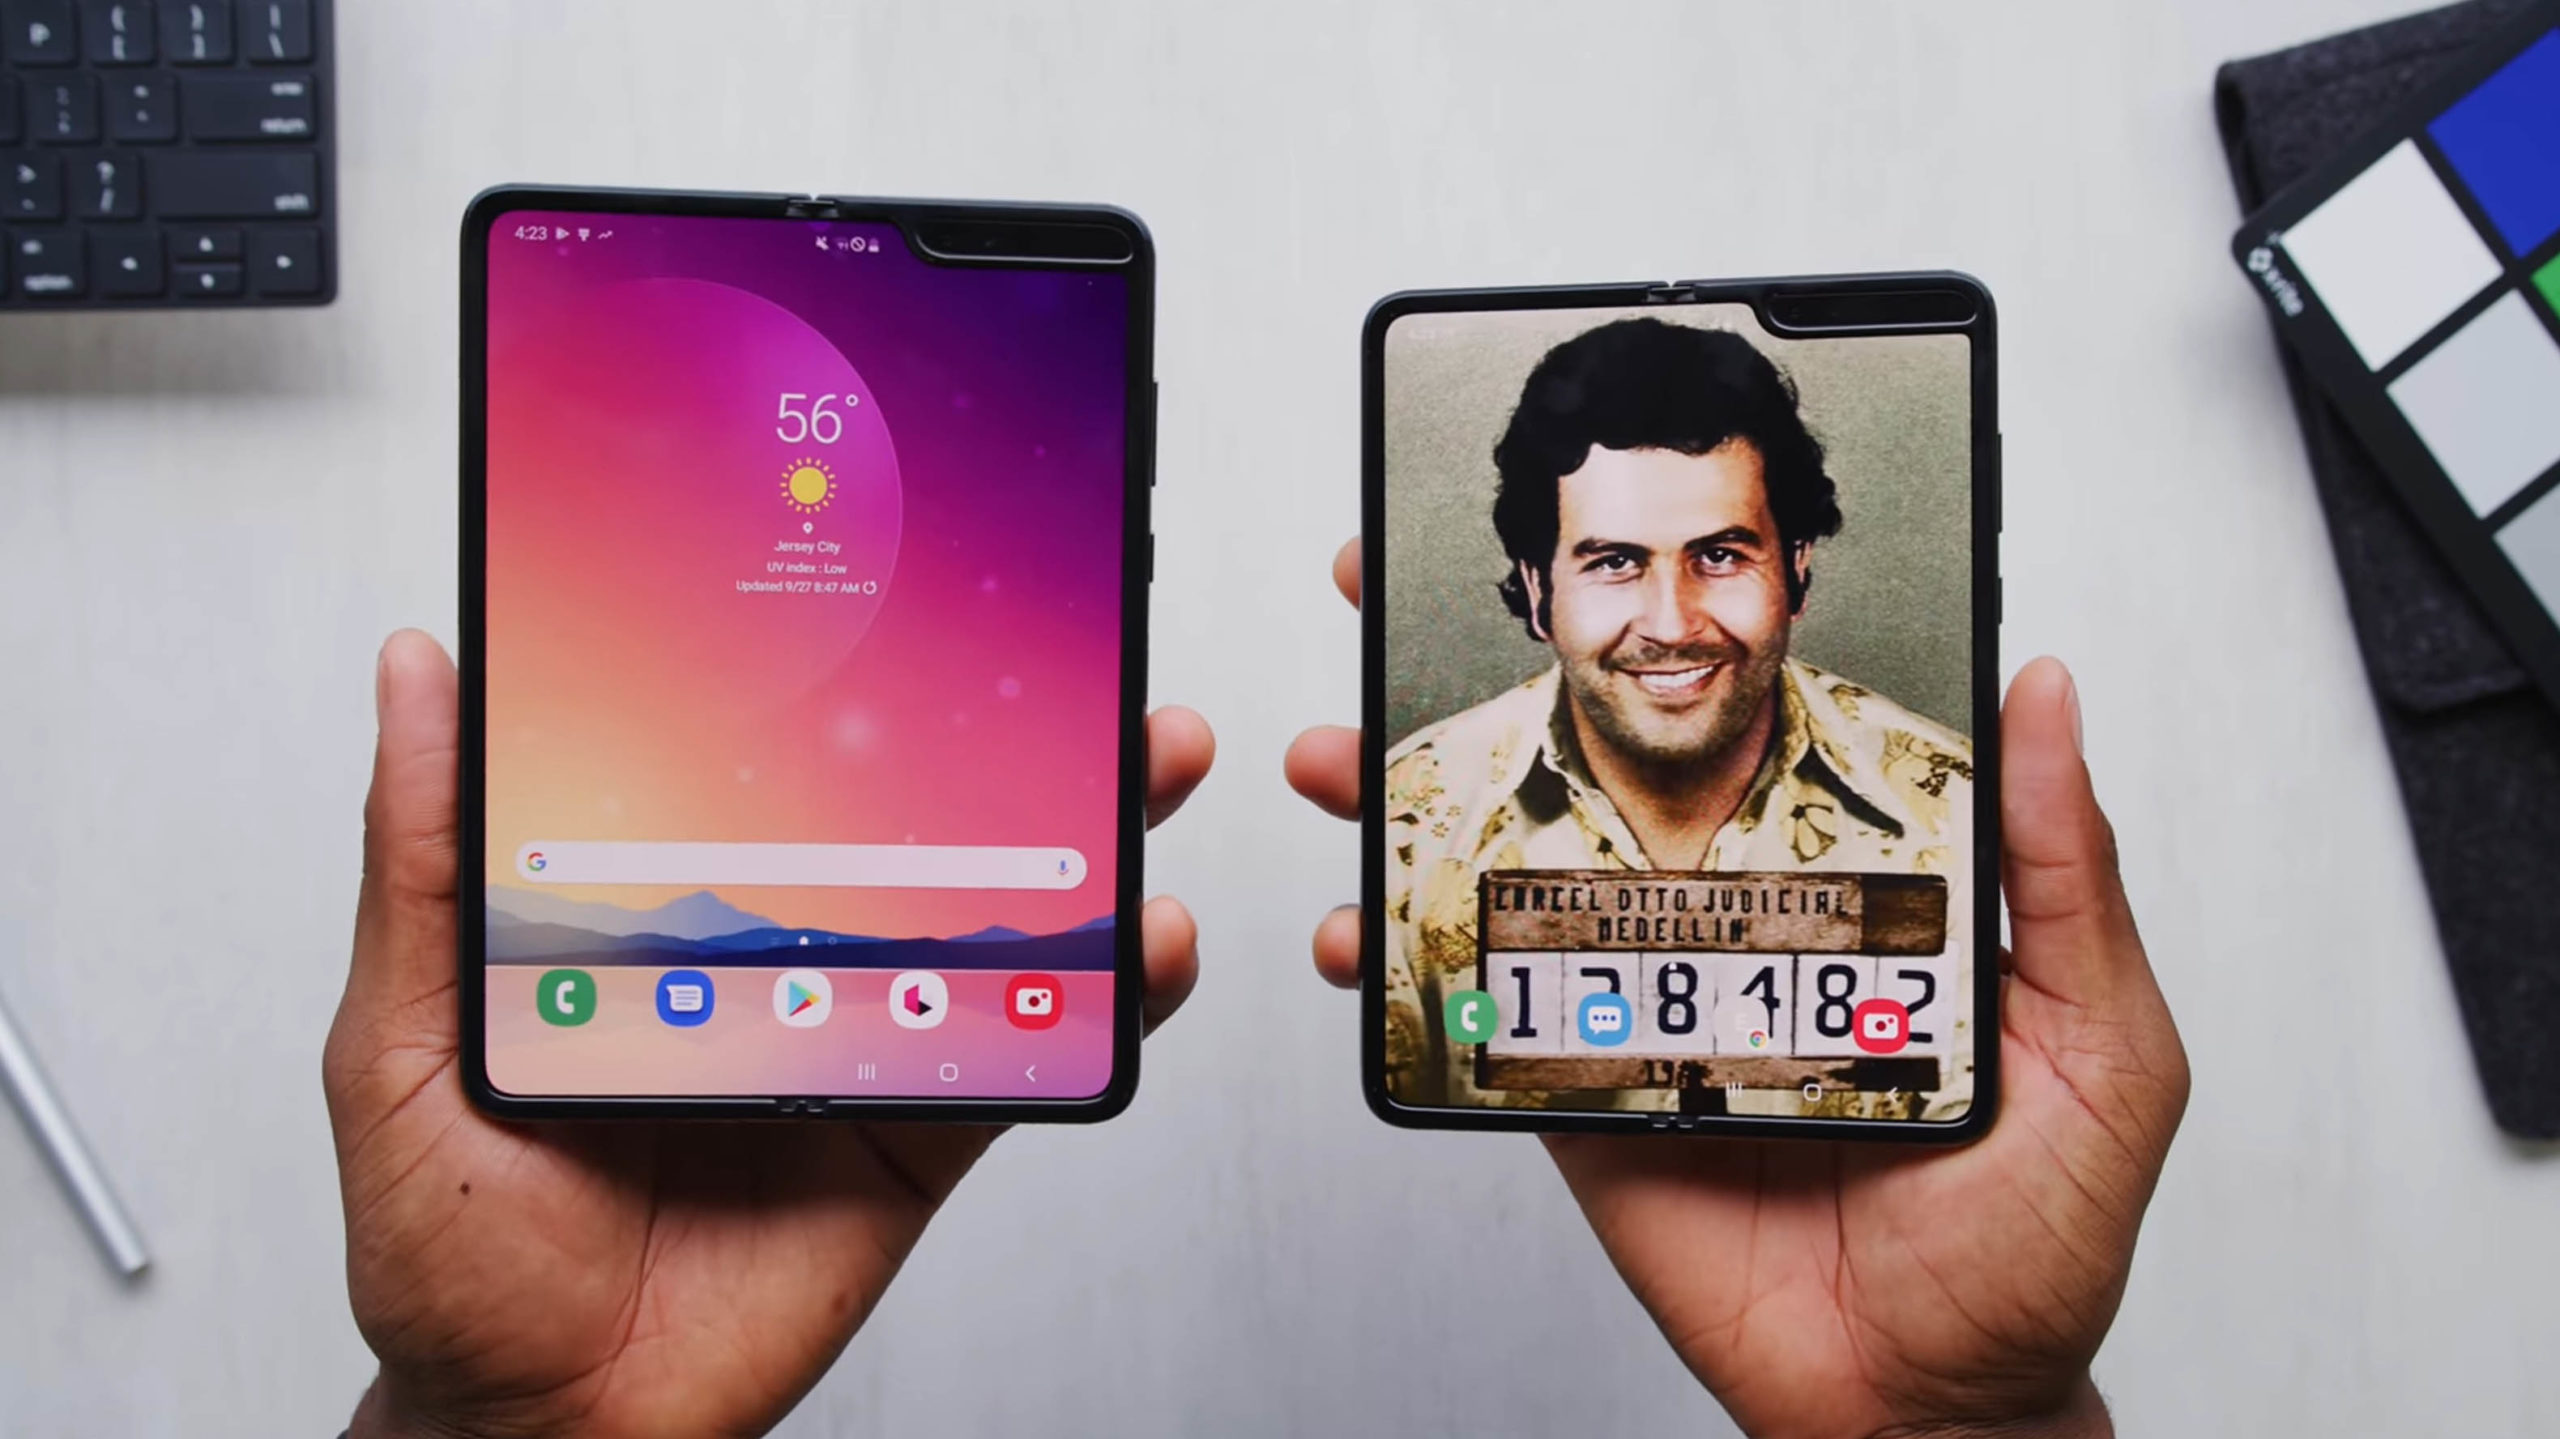 Big Surprise Escobar Fold 2 Phone Is Just A Galaxy Fold With A Gold Sticker On It